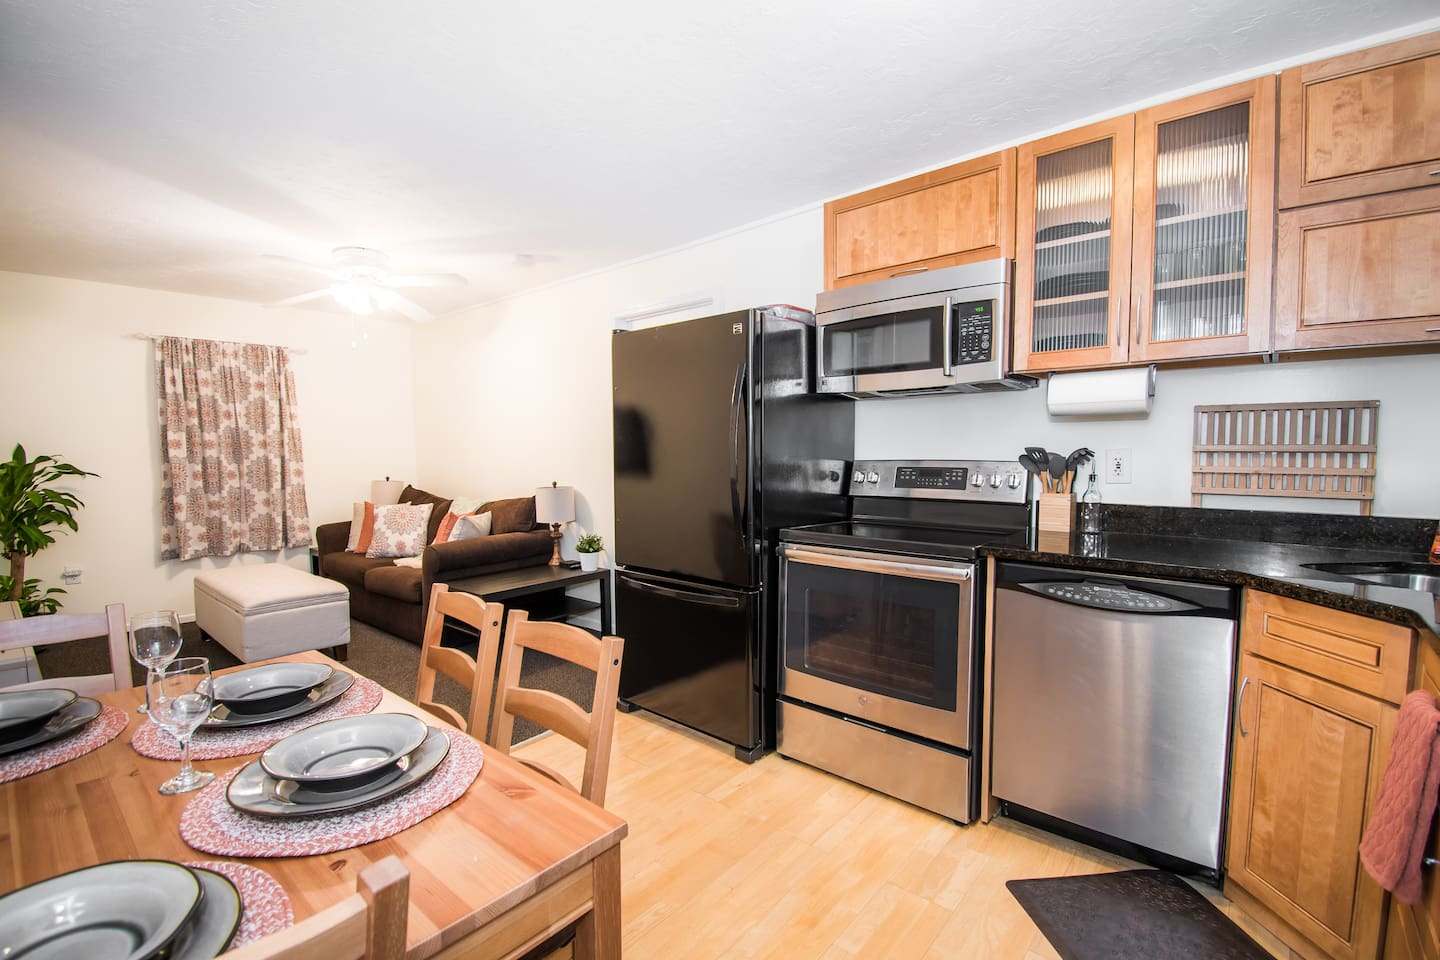 Fully Stocked Kitchen / Stovetop & Oven / Fridge with Ice Maker / Dishwasher / Quality Pots & Pans / Spices, Oil, Cooking Supplies / Eat In Area for 4 / Place Settings for 8+